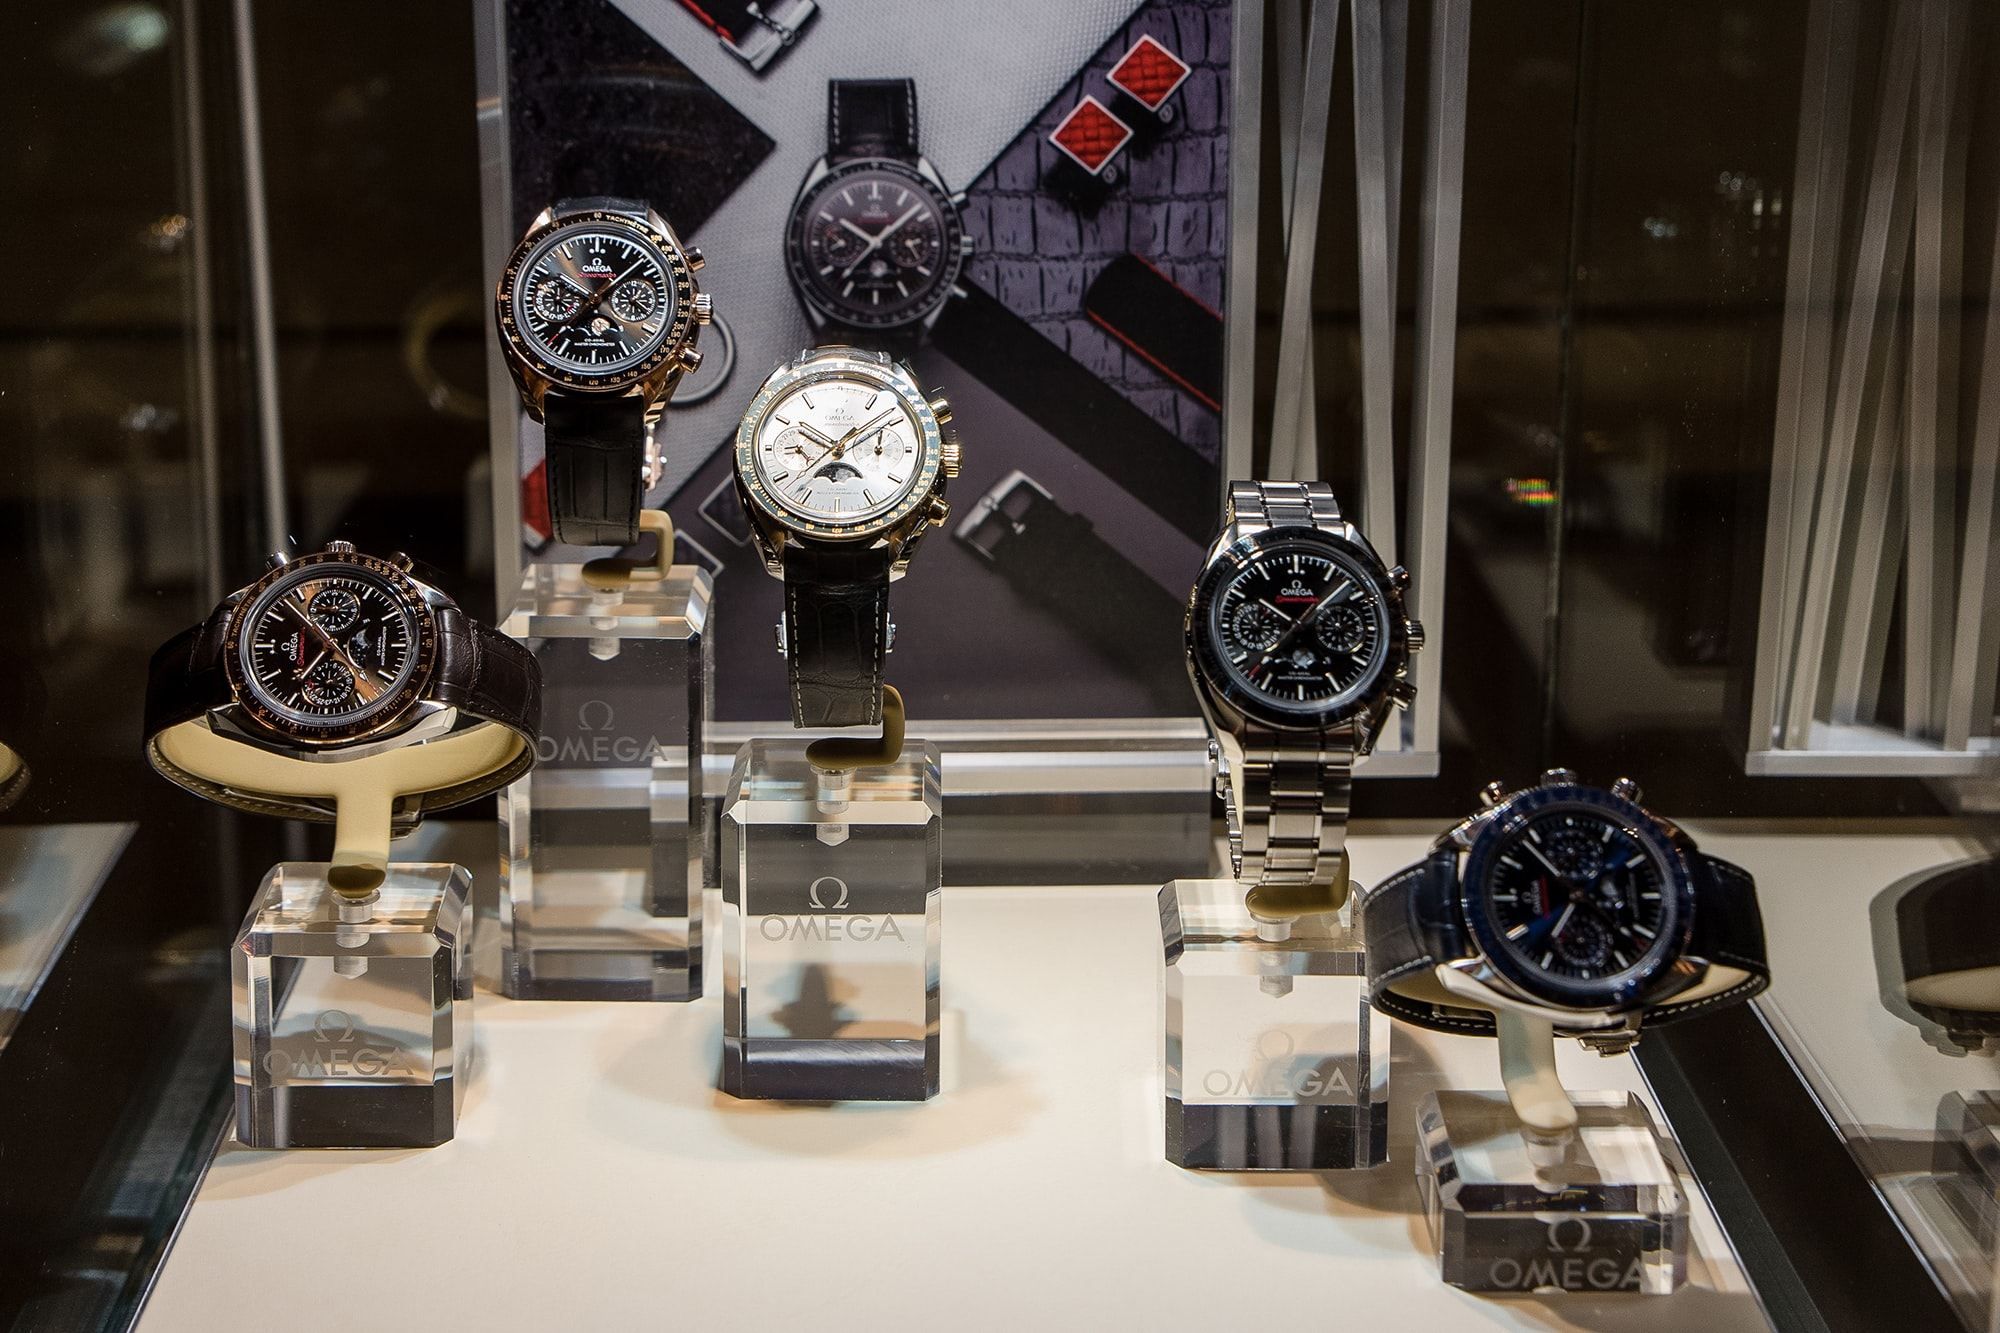 Photo Report: HODINKEE And Omega Celebrate The 60th Anniversary Of The Speedmaster Photo Report: HODINKEE And Omega Celebrate The 60th Anniversary Of The Speedmaster  20170221 OmegaSpeedmaster60th 011